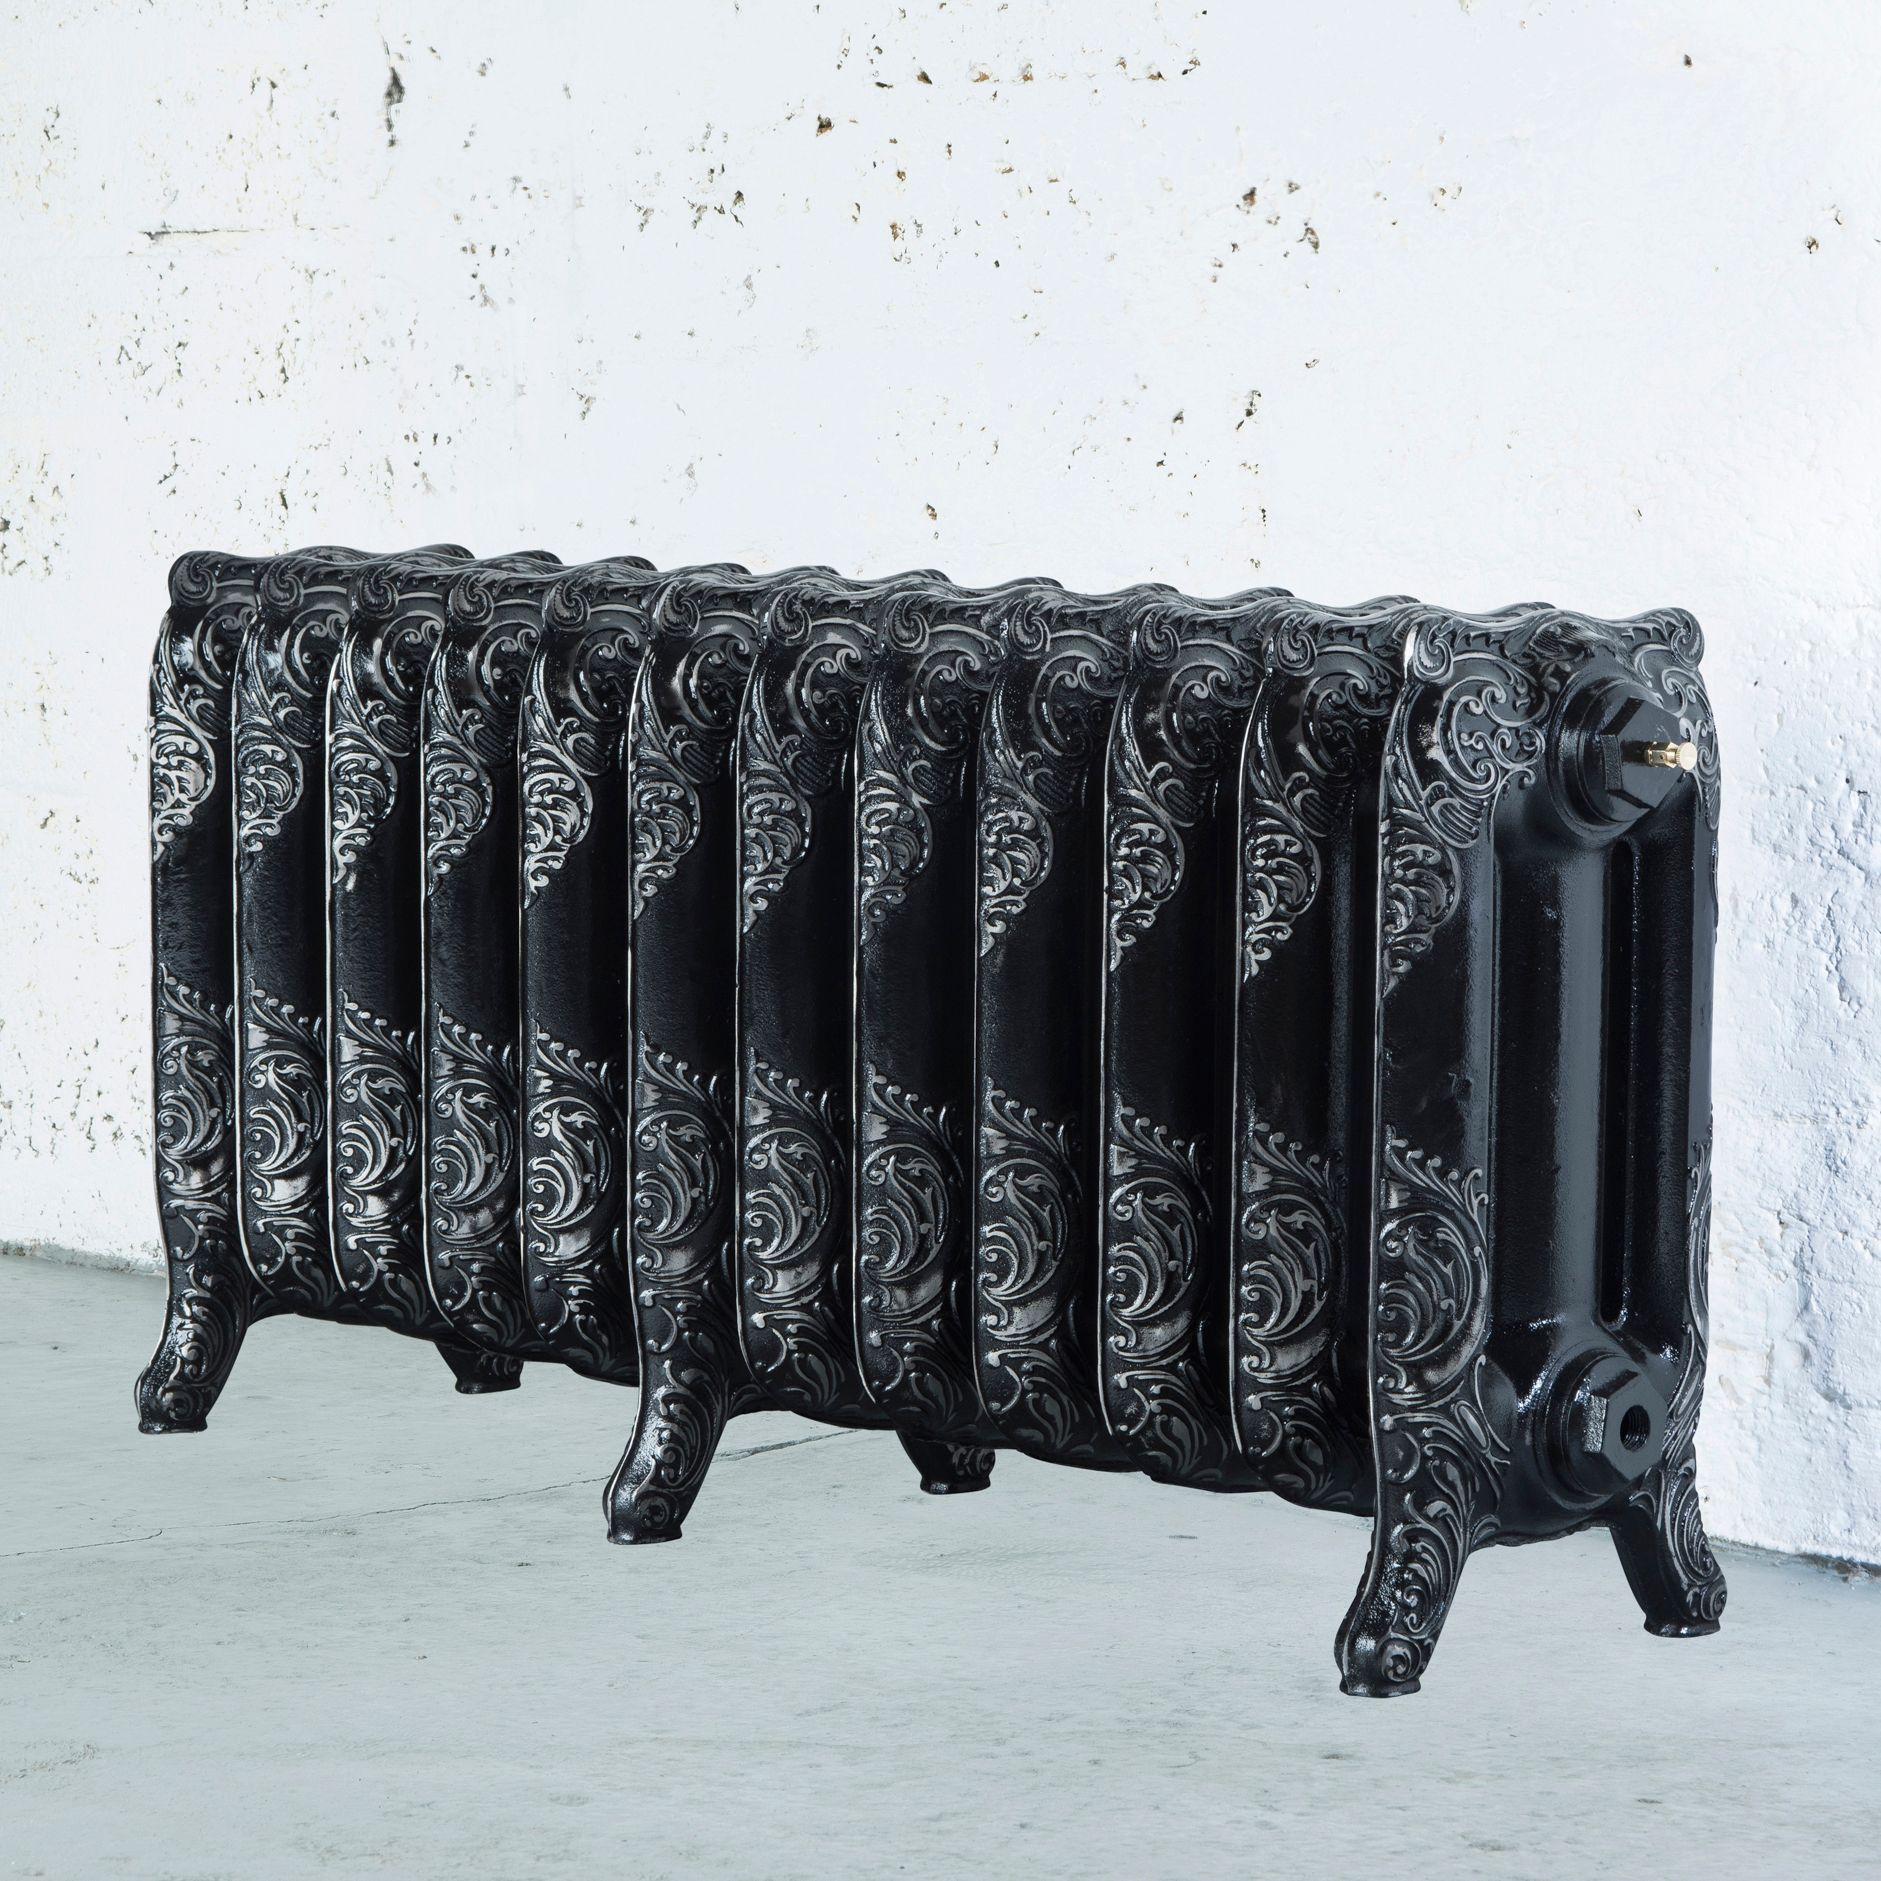 Arroll Montmartre 3 Column radiator, Black & silver